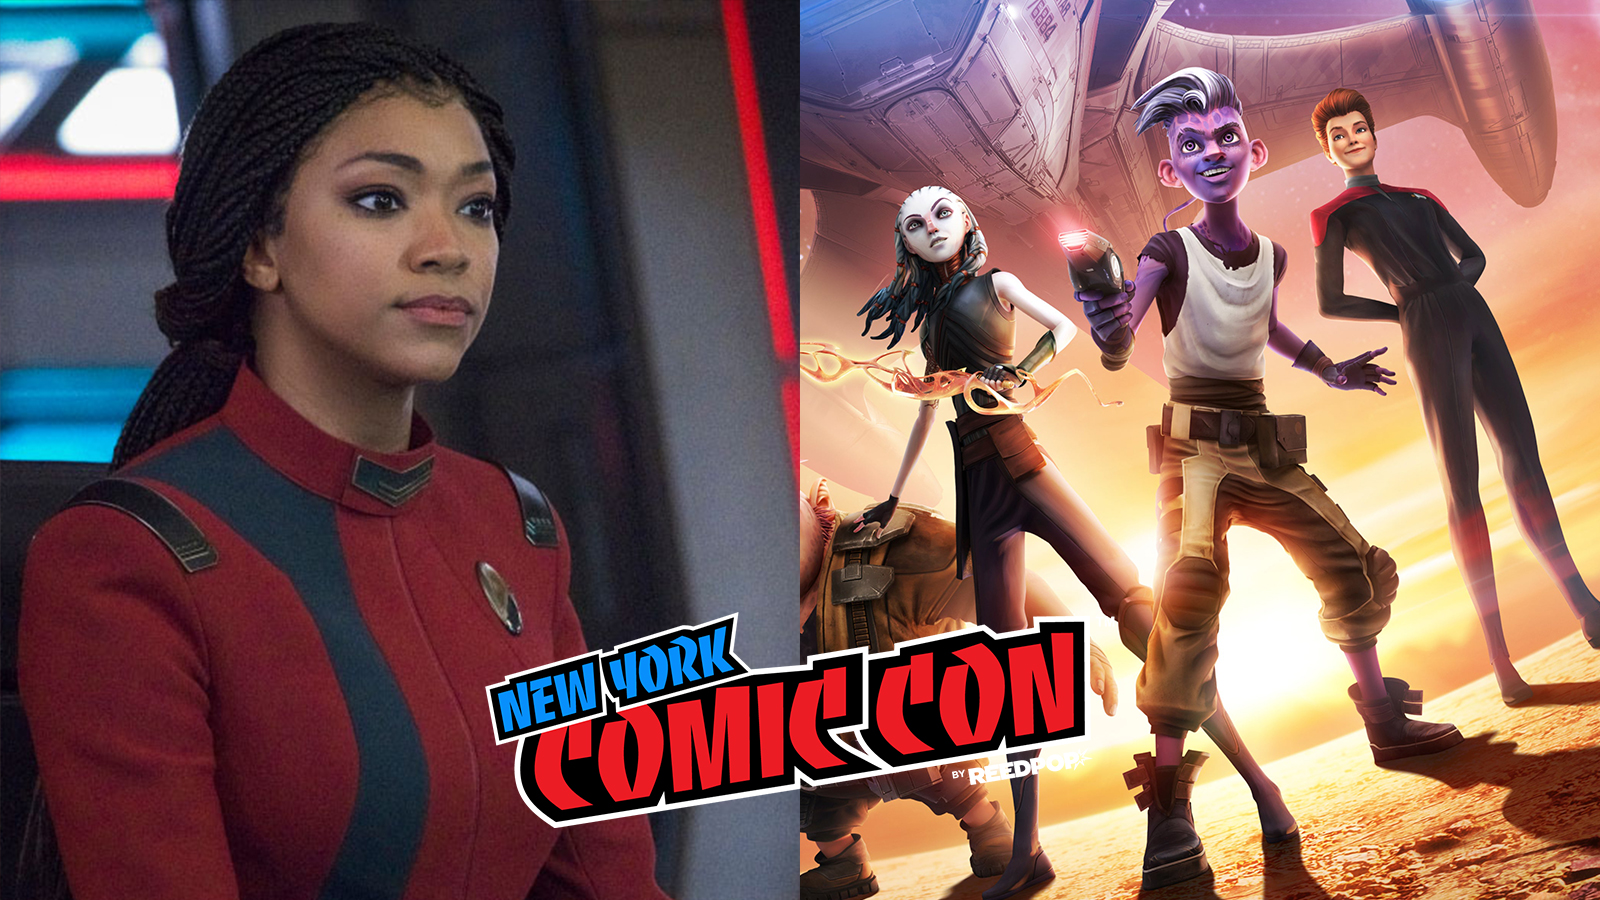 Star Trek Returns To New York Comic Con This Weekend With Prodigy Premiere And Discovery Panel